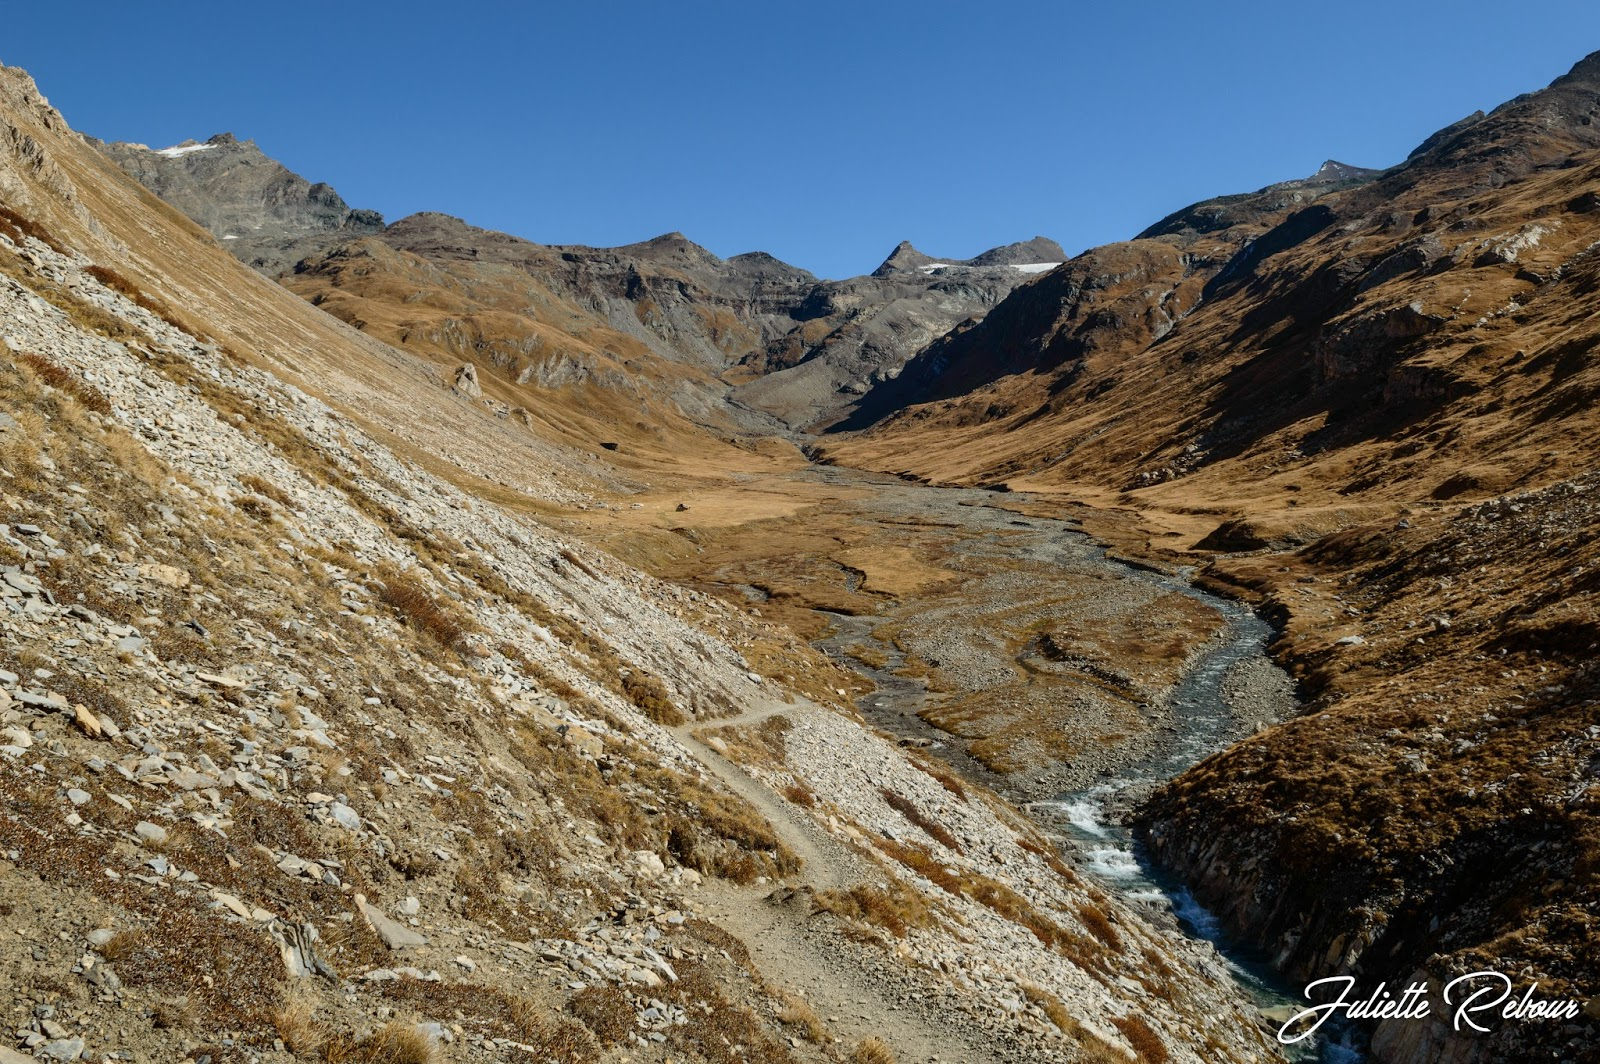 La plaine du Prariond, Parc National de la Vanoise